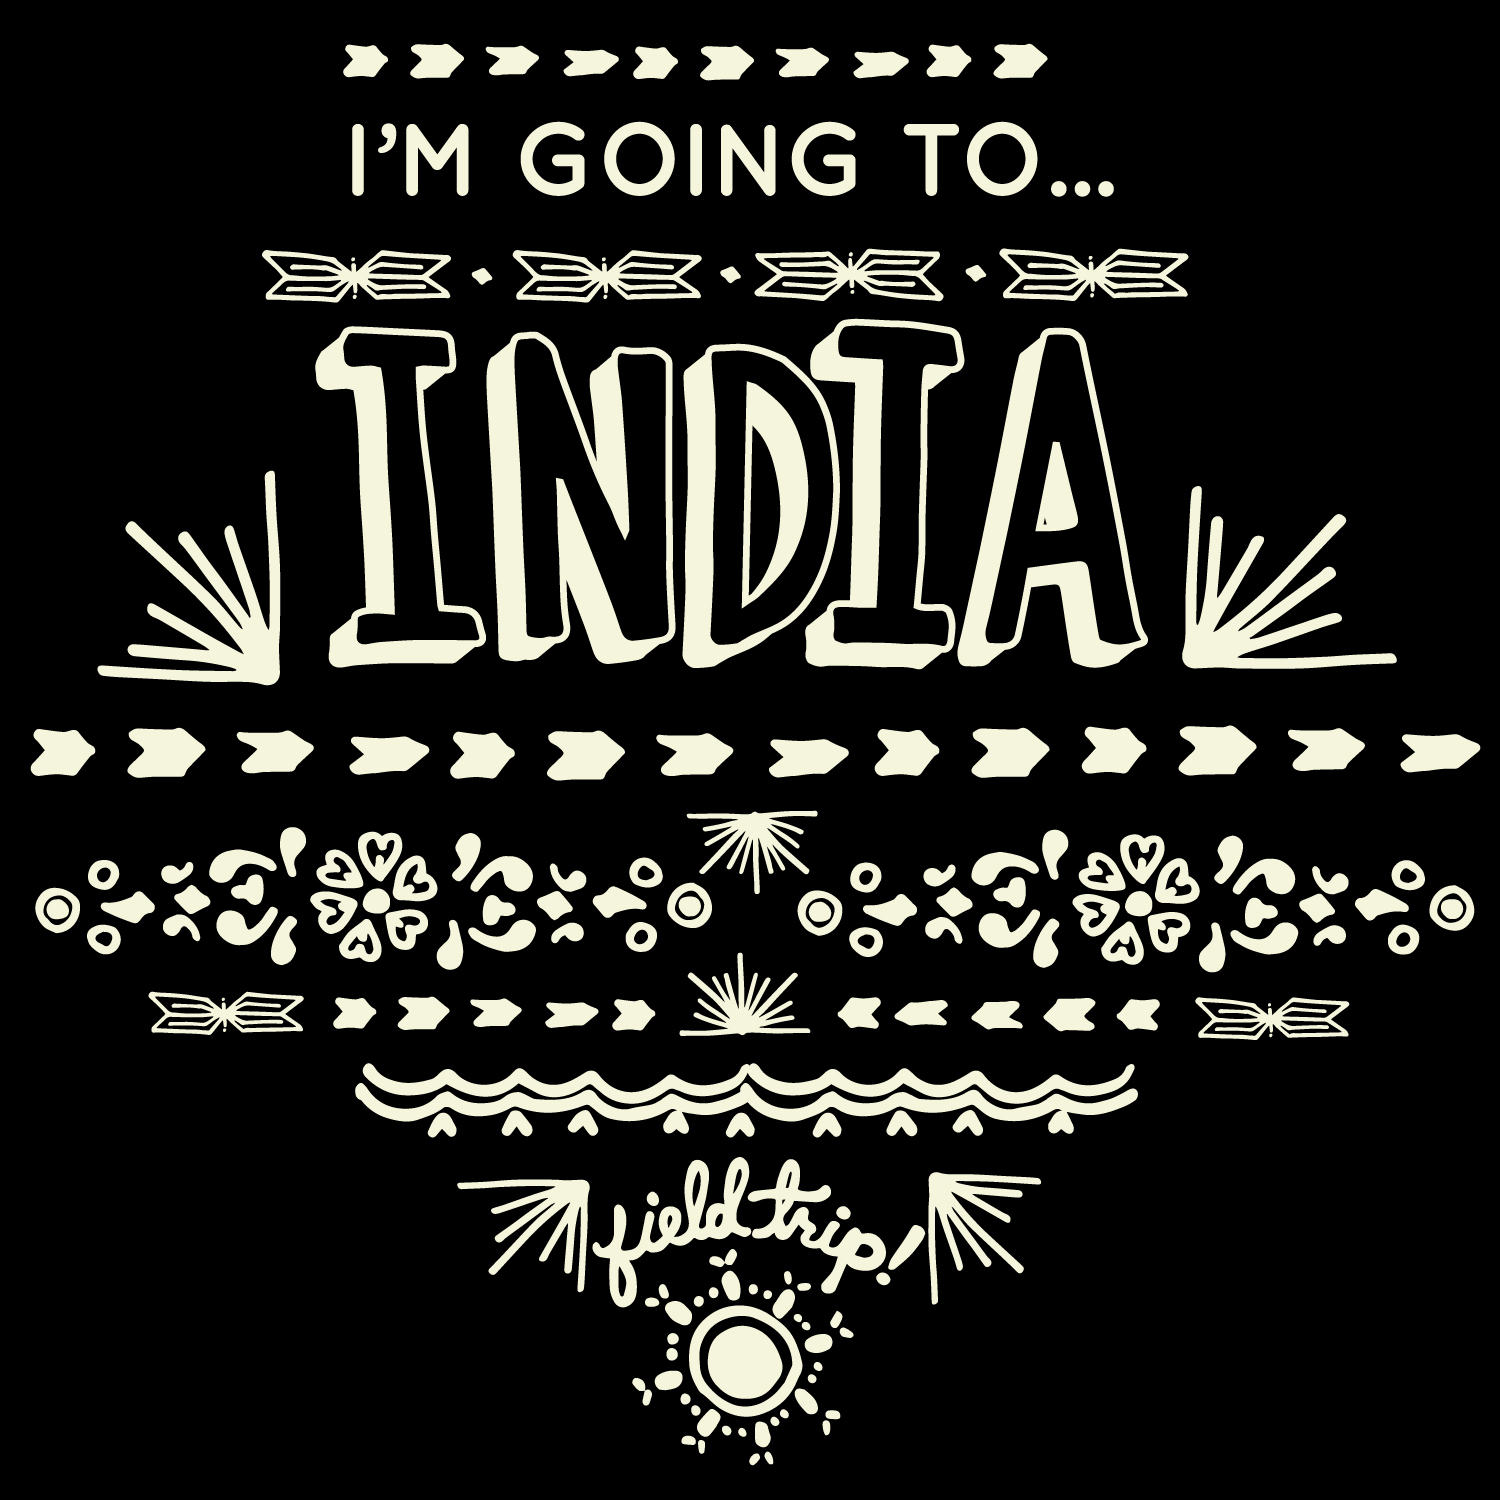 im going to india 3.jpg